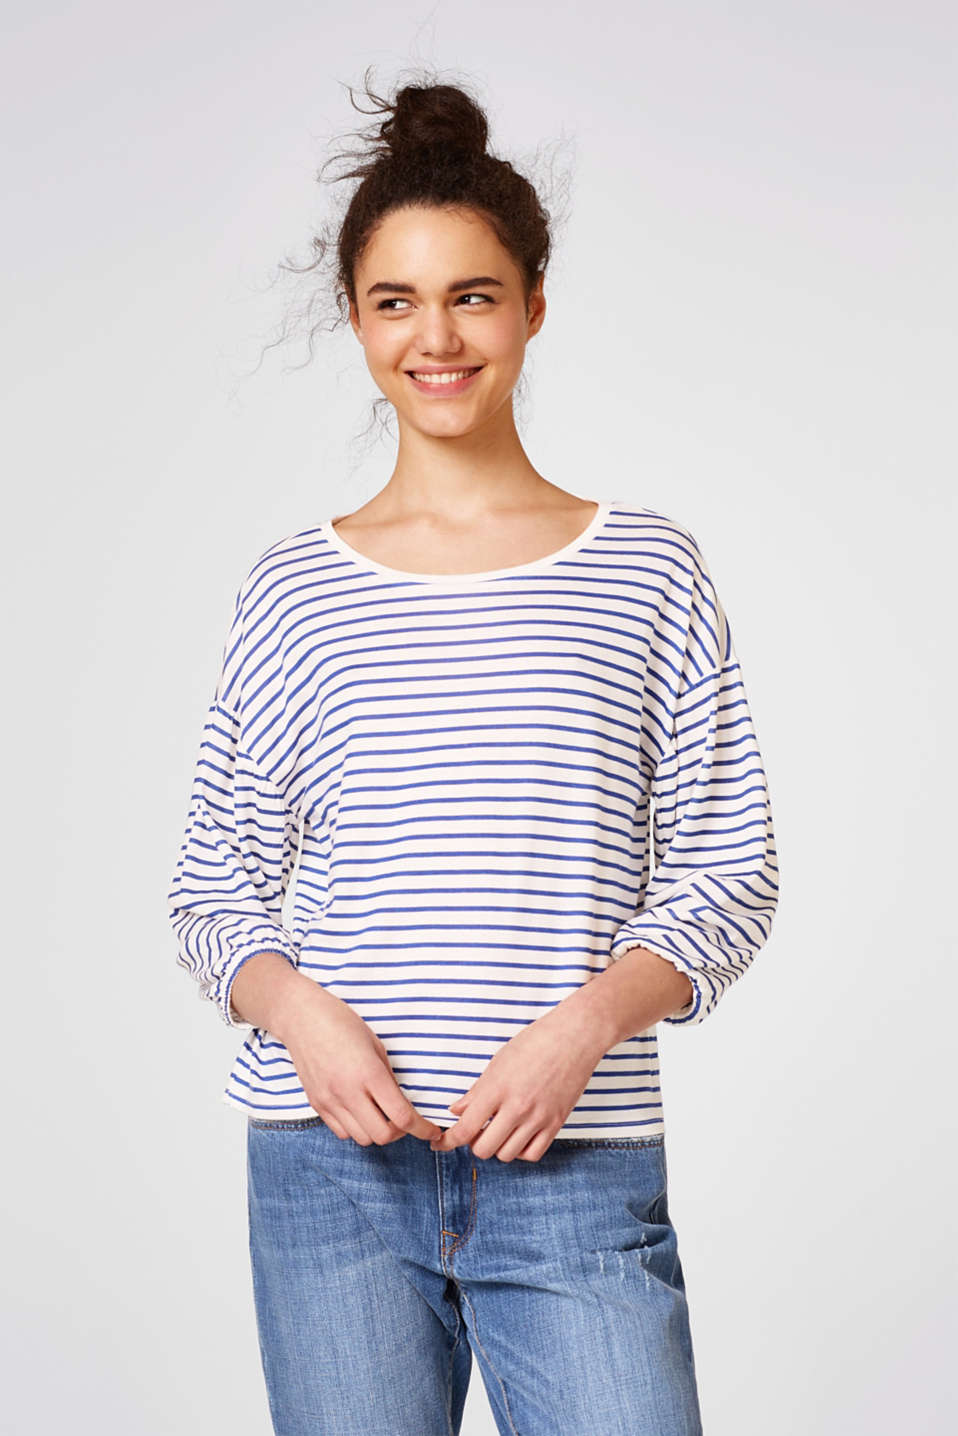 Esprit - Boxy top with balloon sleeves, cotton blend